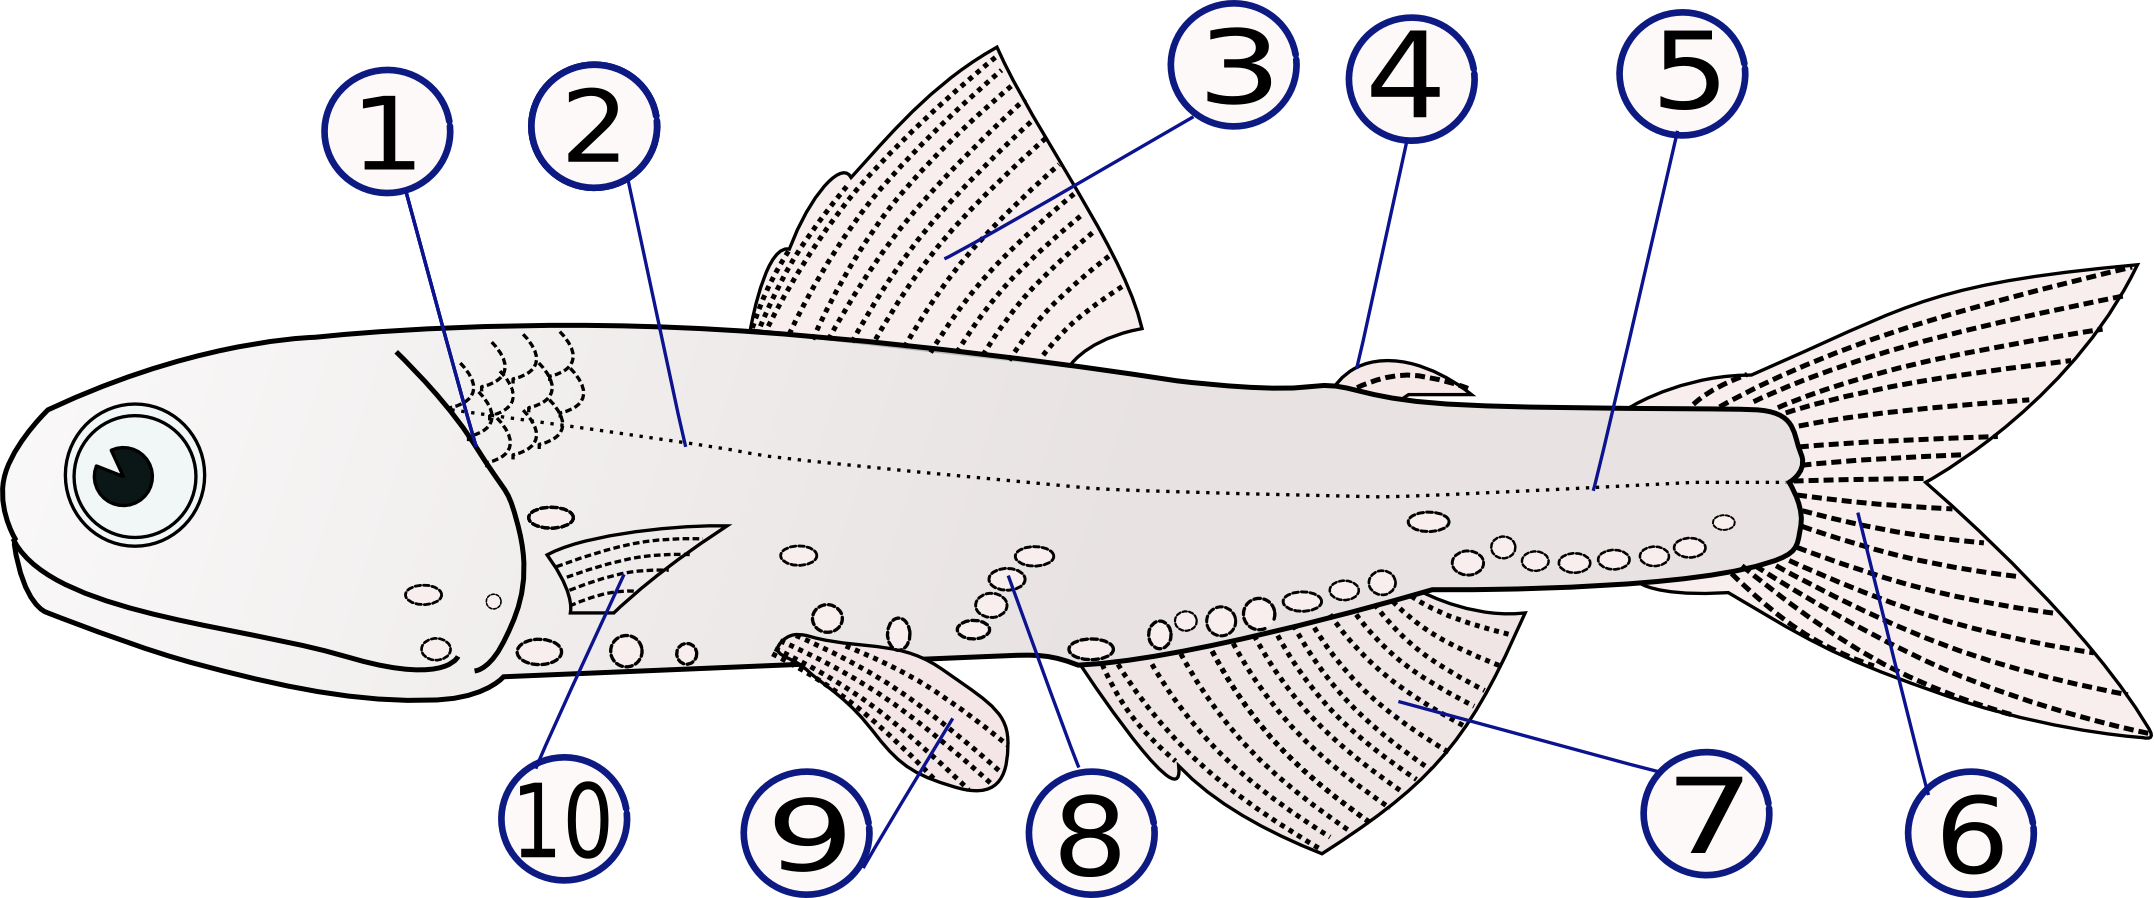 Dogfish shark dissection - WriteWork